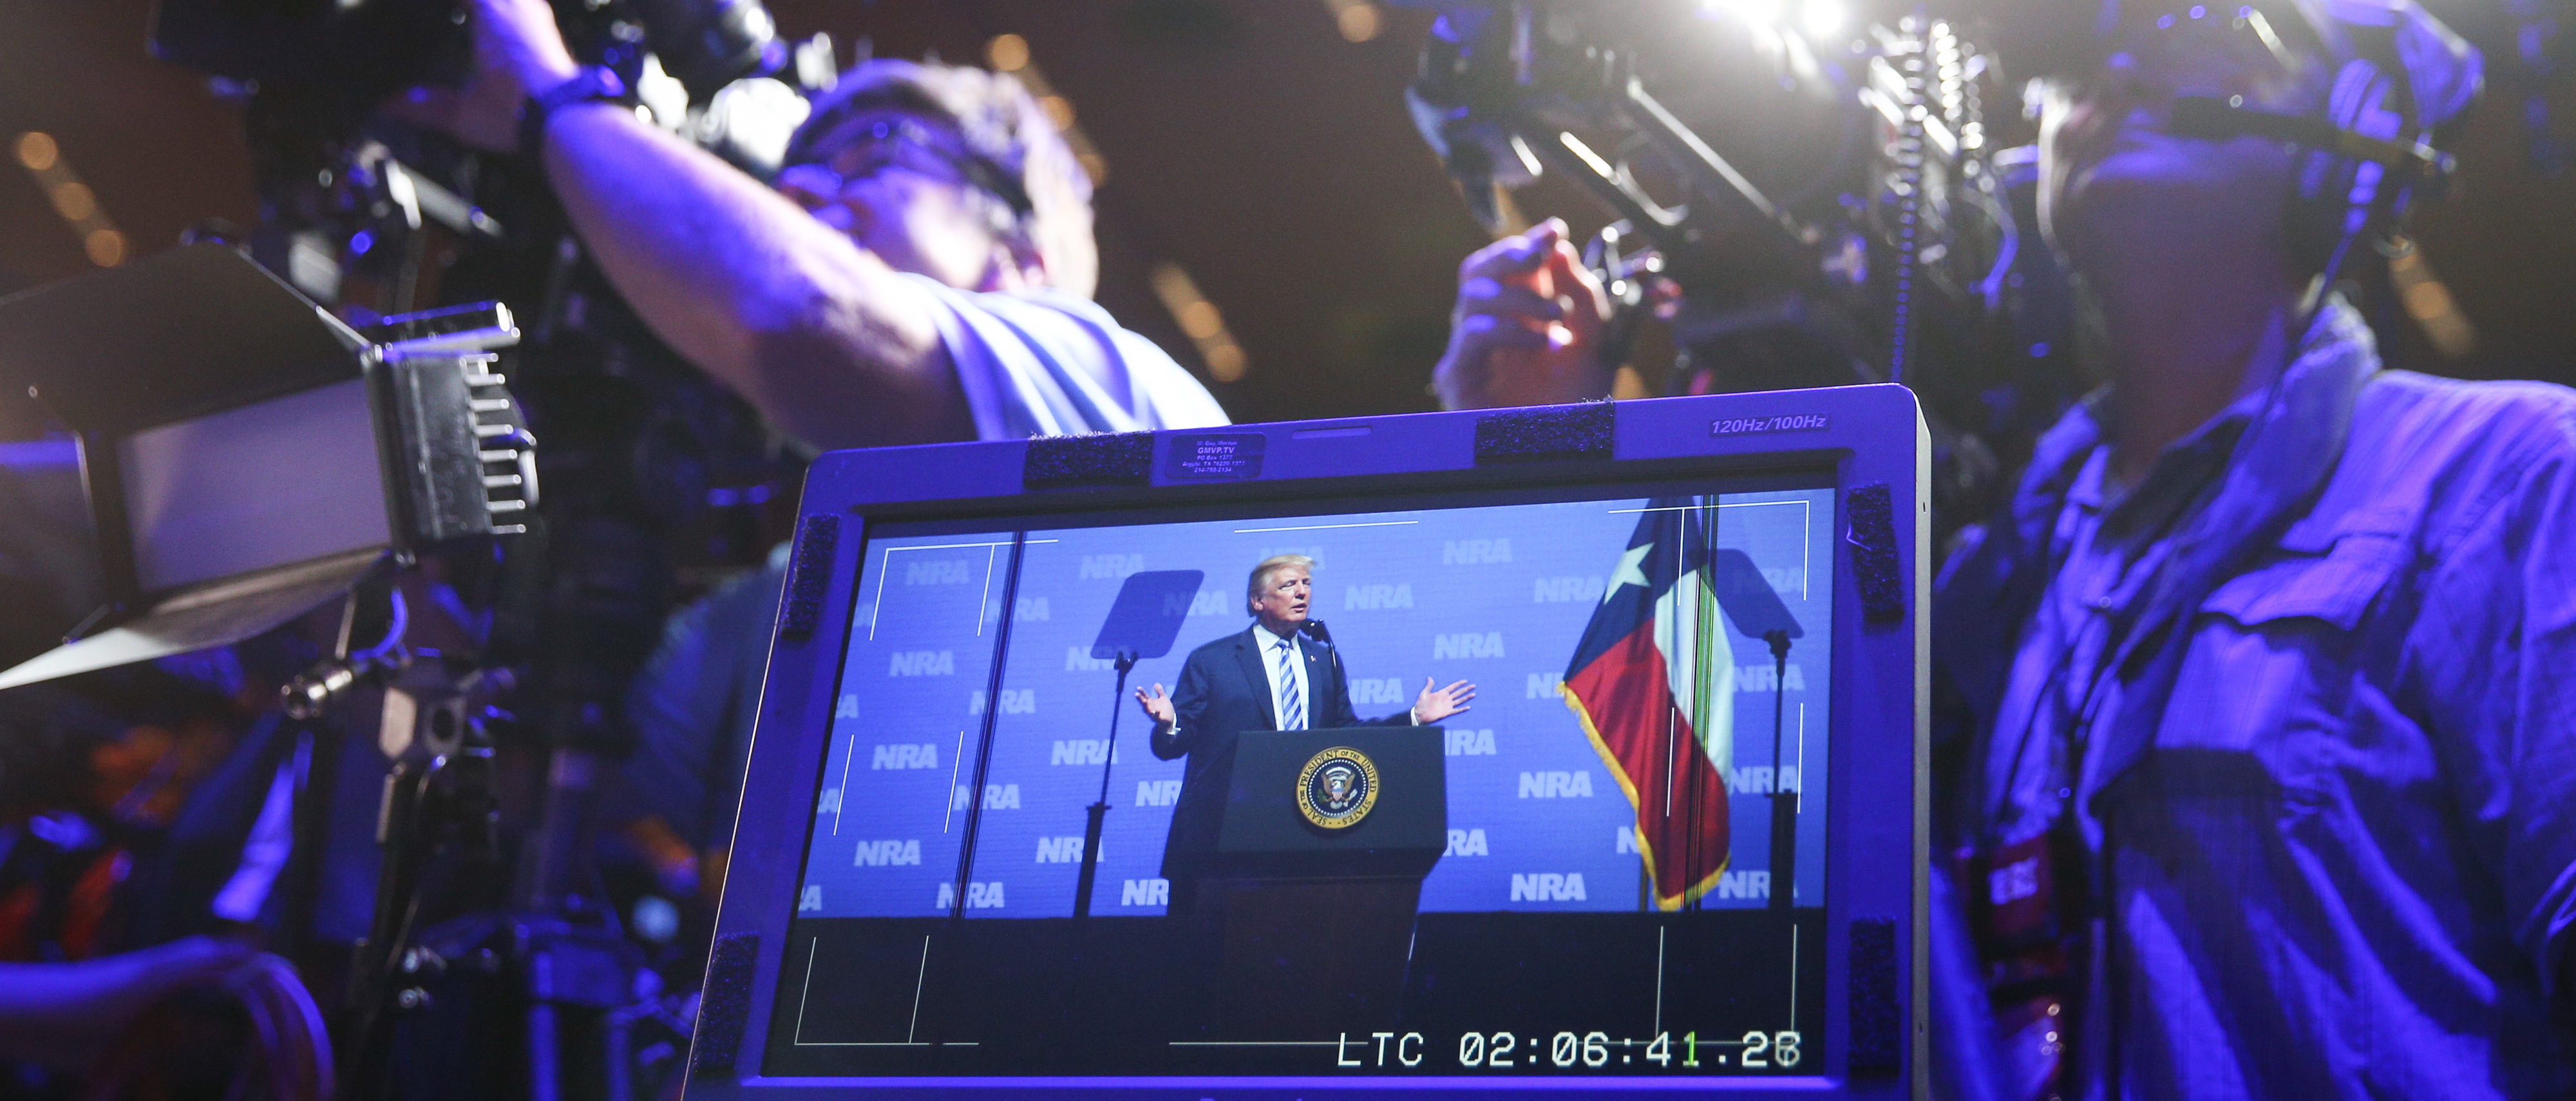 Television crews film as US President Donald Trump speaks at the NRA-ILA Leadership Forum during the NRA Annual Meeting & Exhibits at the Kay Bailey Hutchison Convention Center on May 4, 2018 in Dallas, Texas. (Photo by LOREN ELLIOTT/AFP/Getty Images)